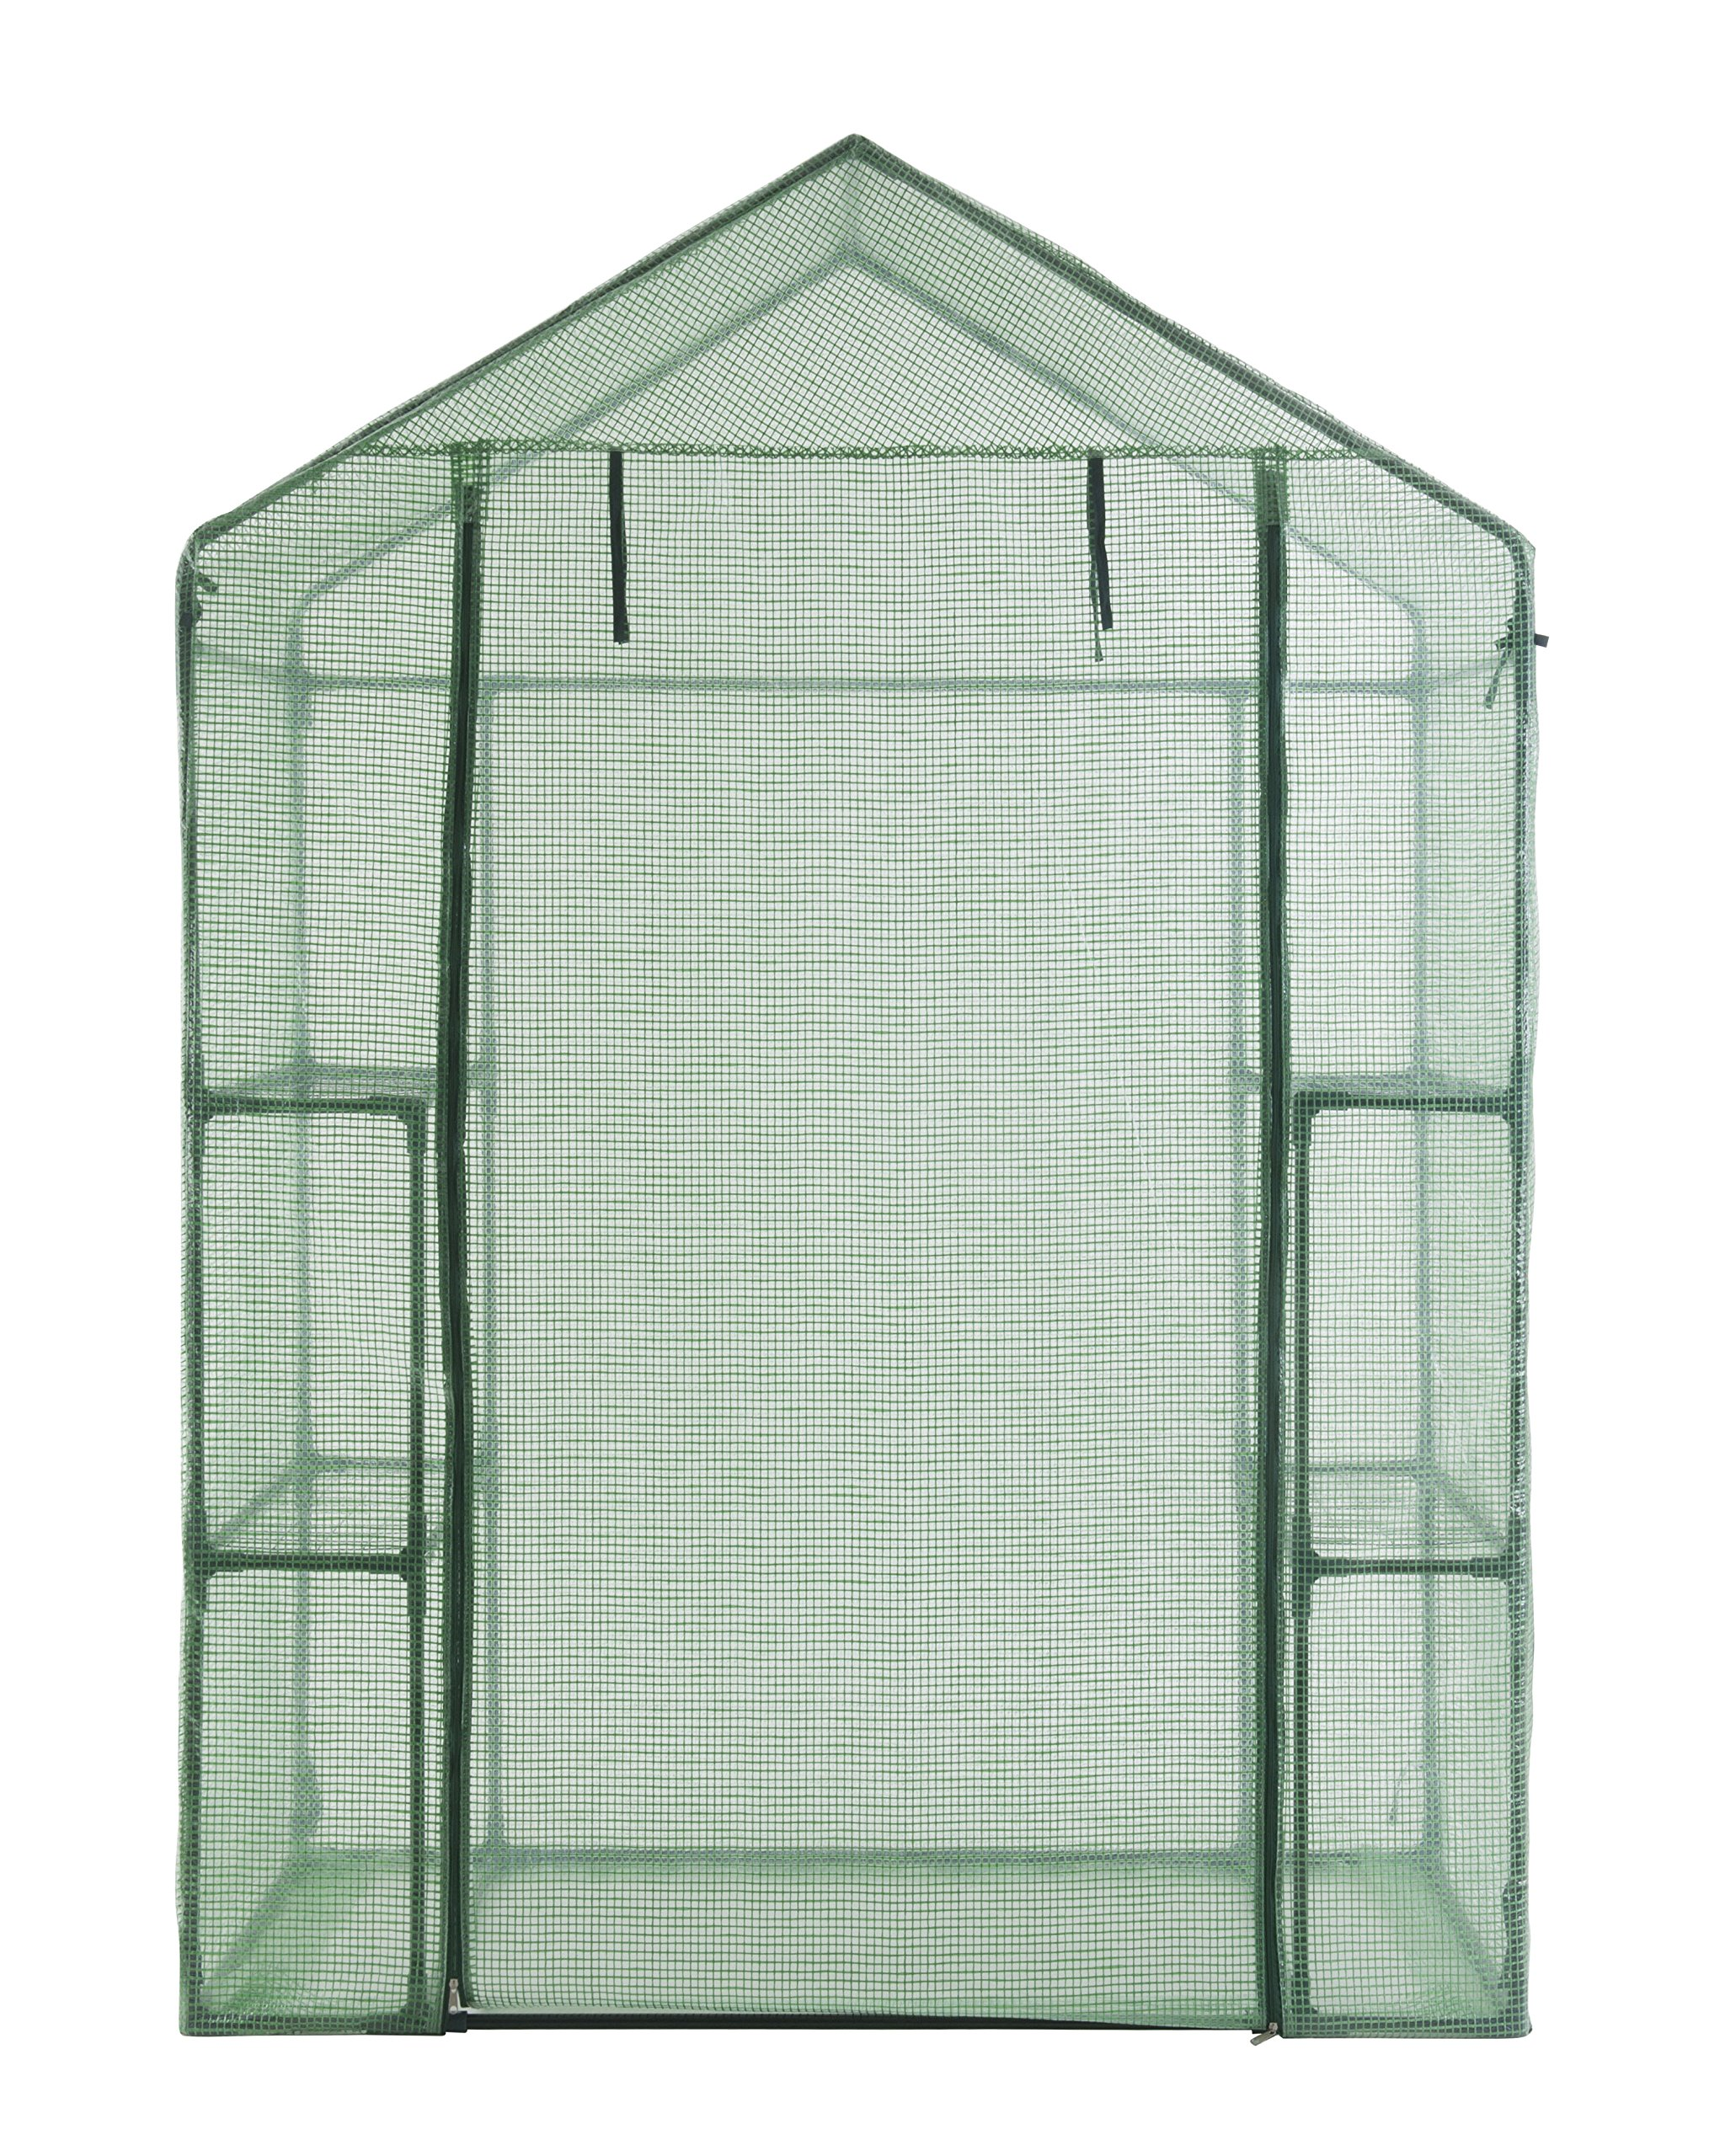 GOJOOASIS Walk in Portable Garden Greenhouse Mini Plants Shed Hot House with 3 Tiers by GOJOOASIS (Image #4)